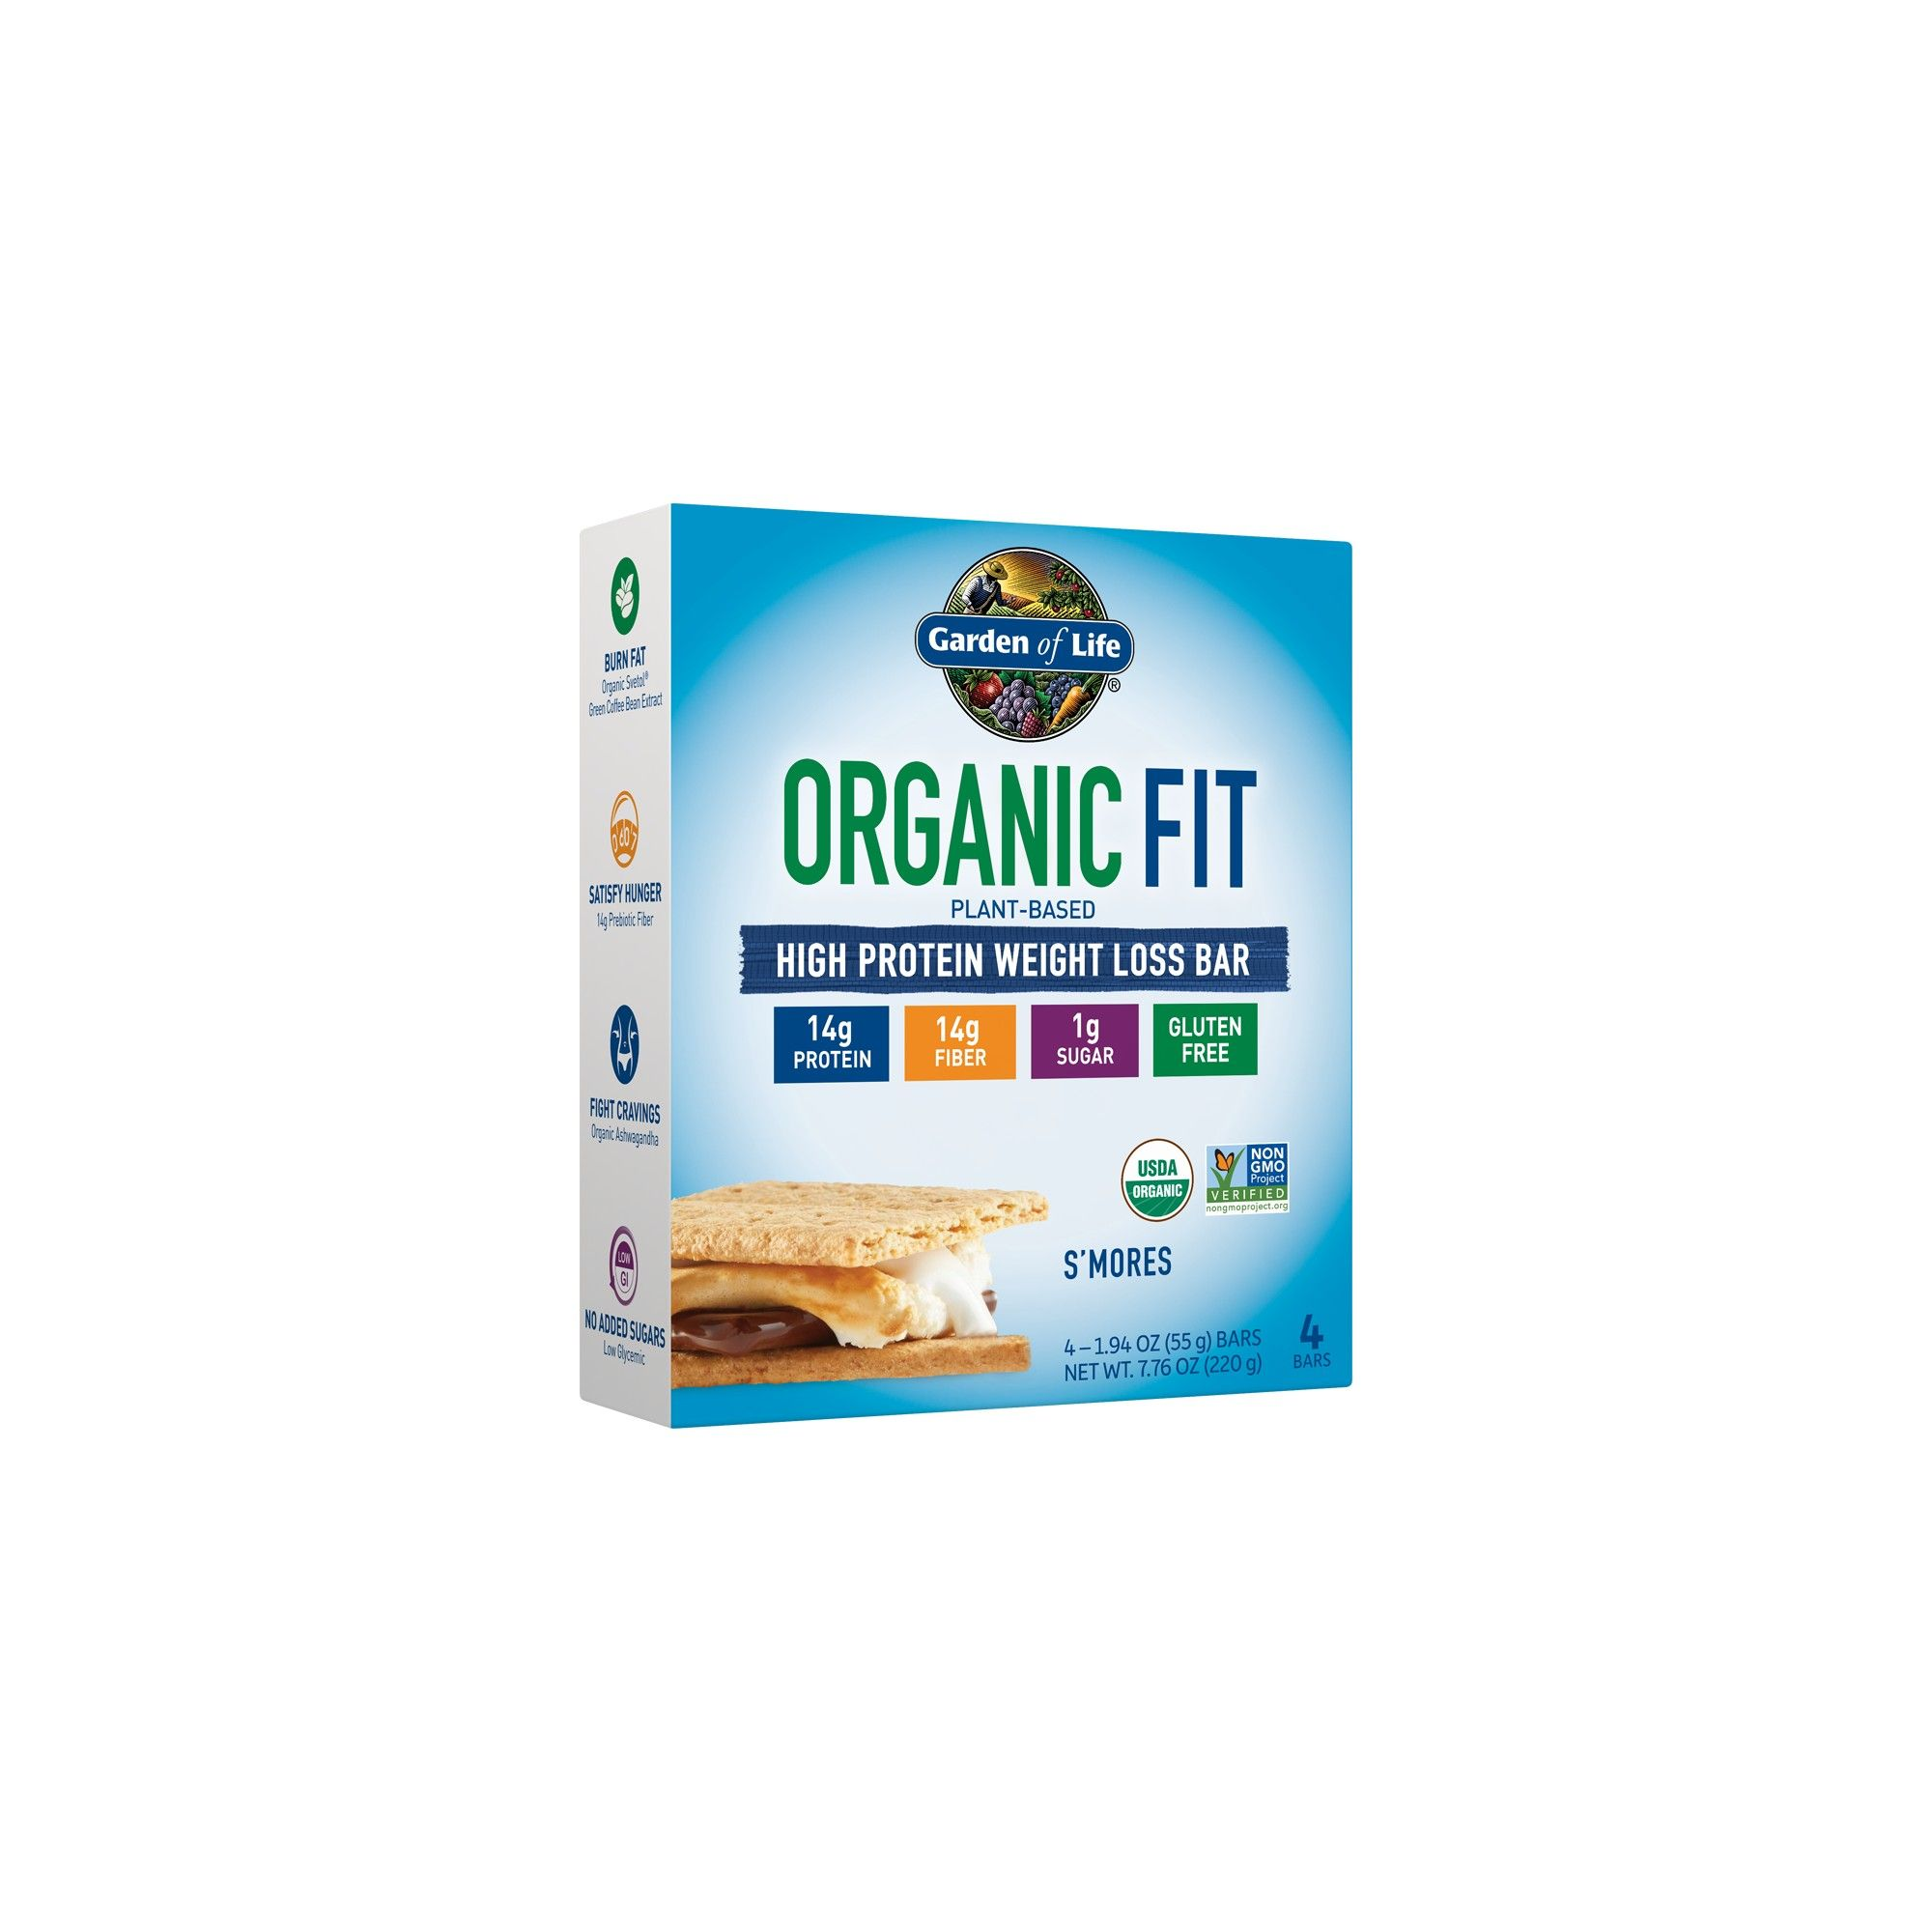 Garden of Life Organic Fit Protein Bar S'mores 4pk in